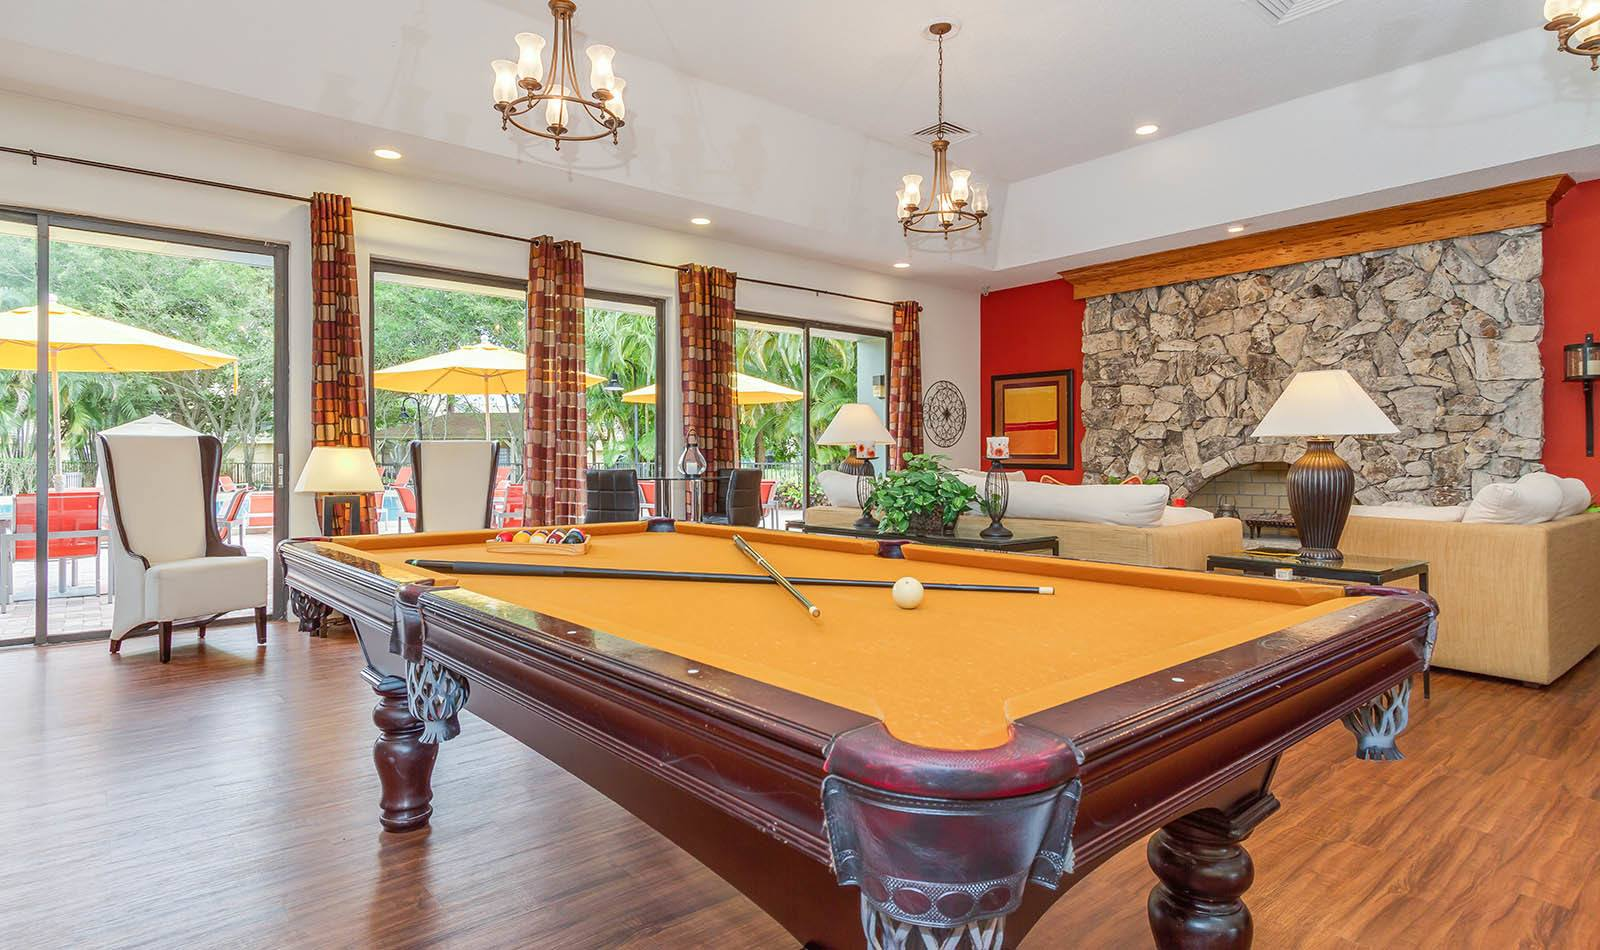 Pool table at apartments in Palm Beach, FL